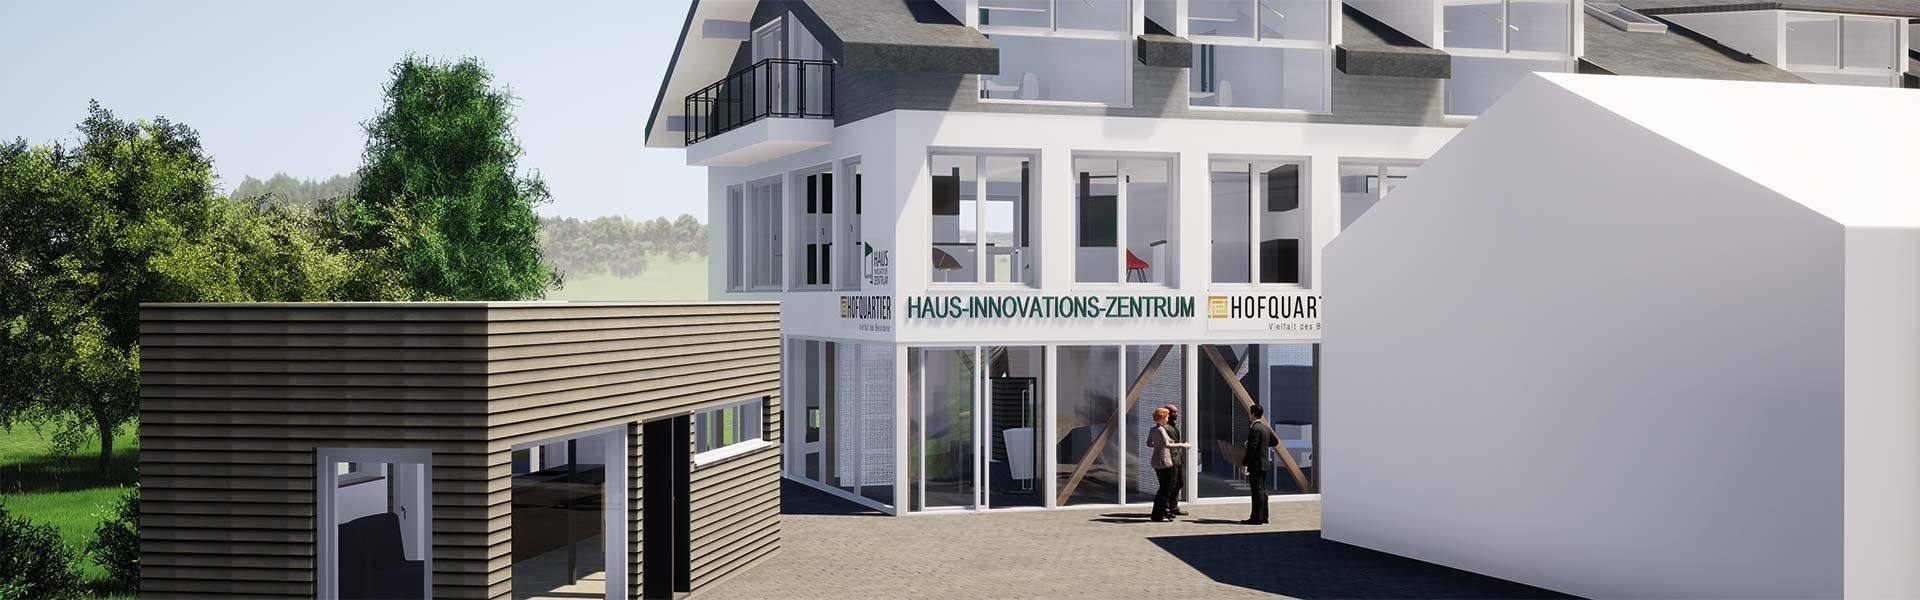 Haus-Innovations-Zentrum